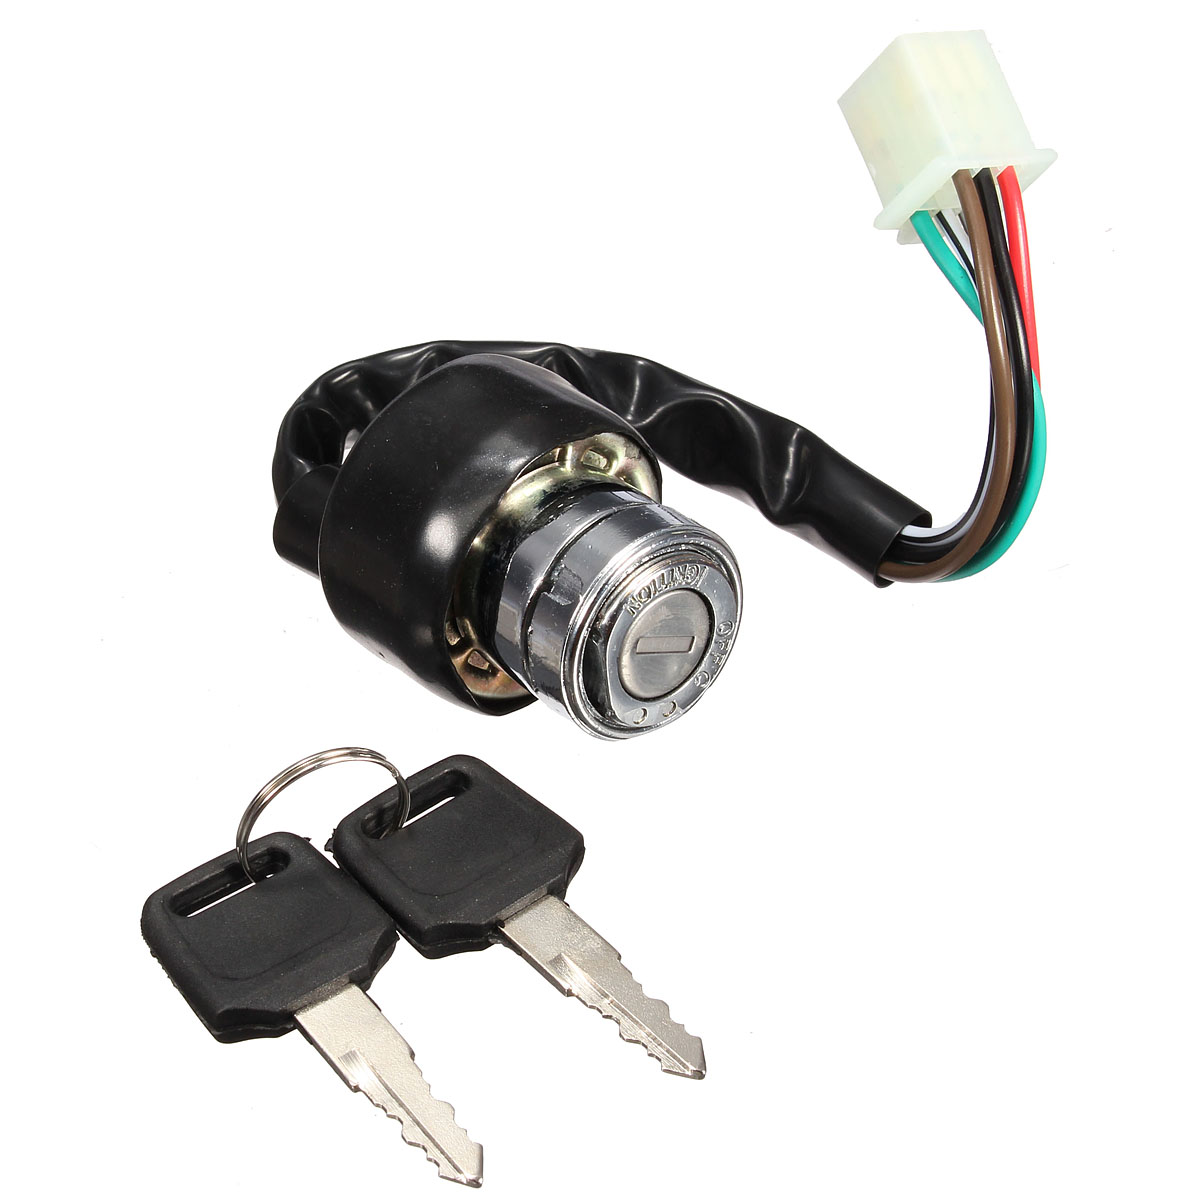 popular 6 wire ignition switch buy cheap 6 wire ignition. Black Bedroom Furniture Sets. Home Design Ideas